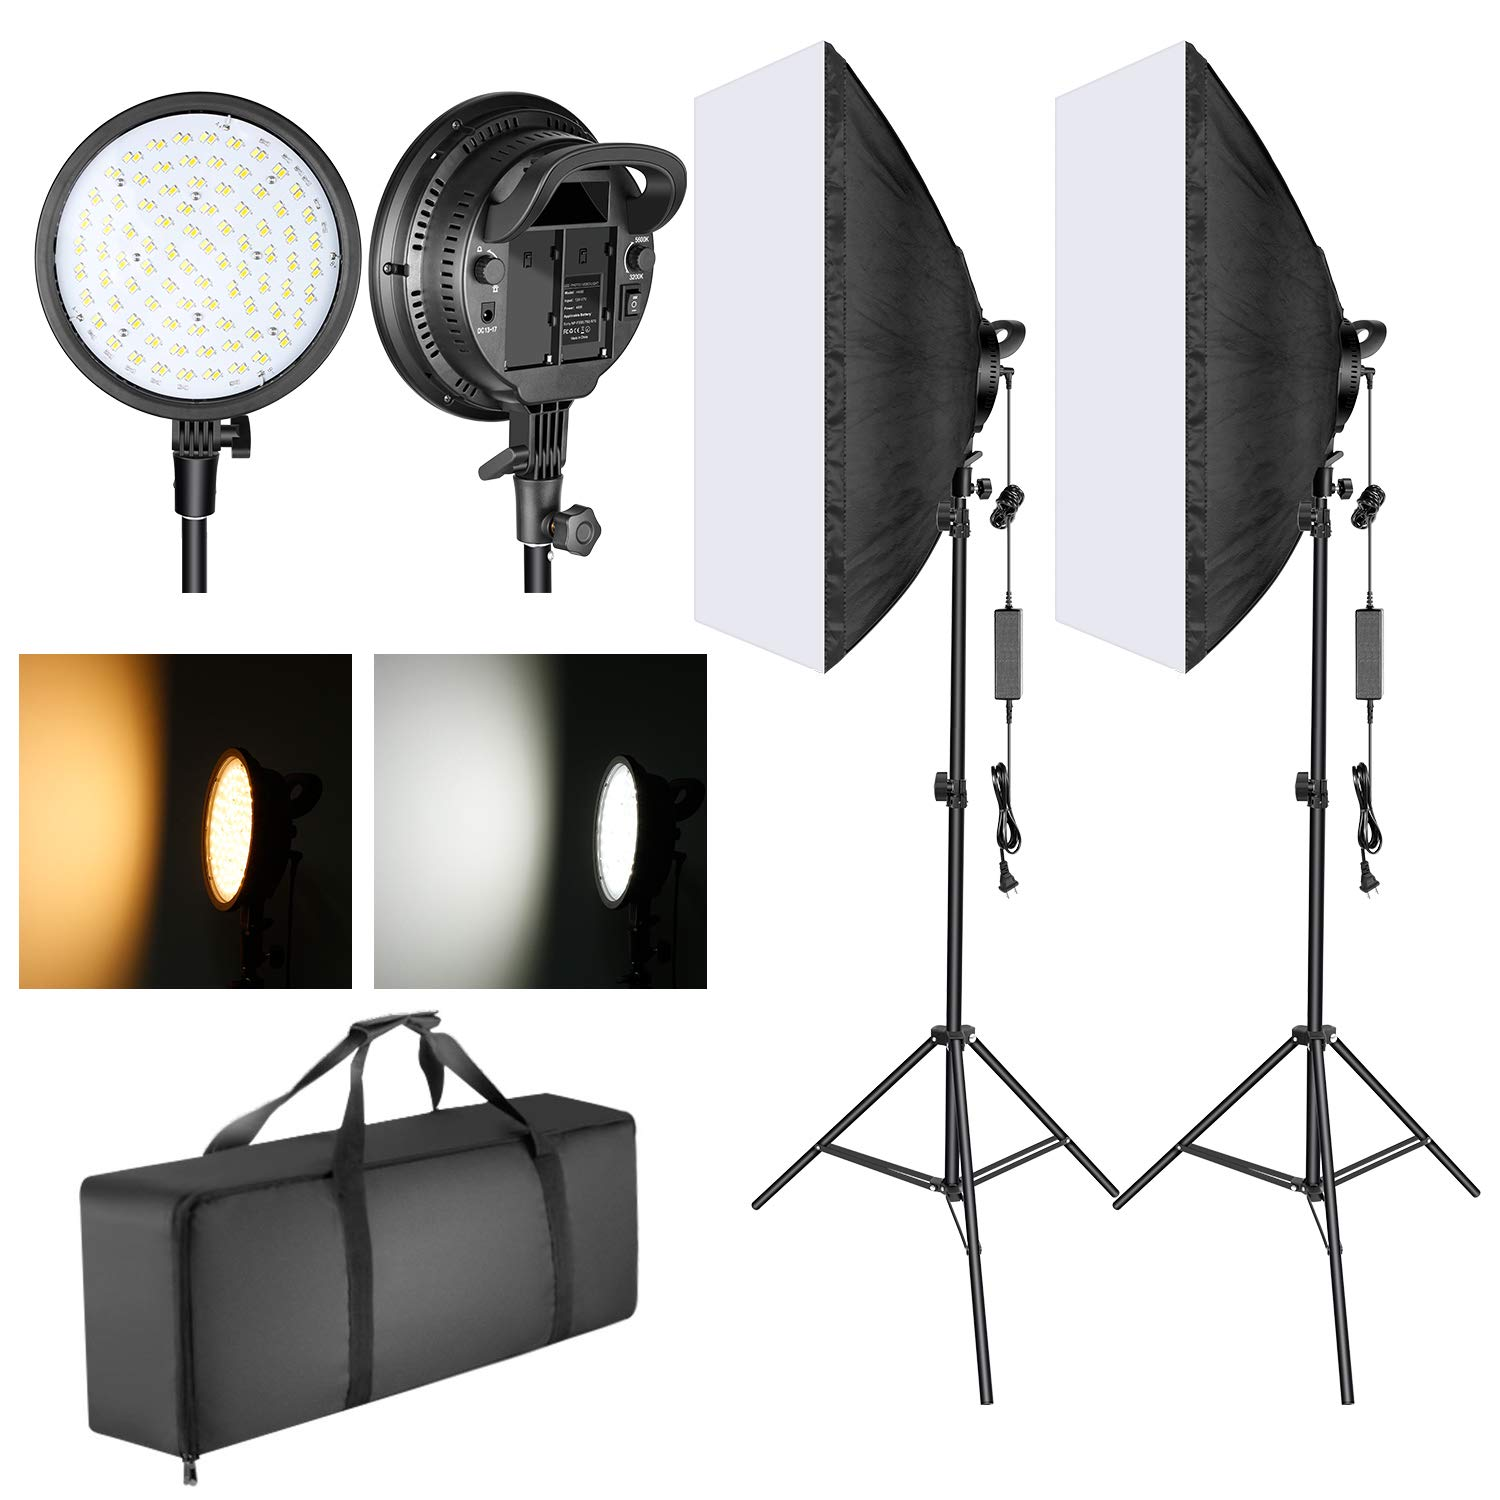 Neewer LED Softbox Lighting Kit: 20x28 inches Softbox, 48W Dimmable 2-Color Temperature LED Light Head with Battery Compartment and Light Stand for Indoor/Outdoor Photography (Battery Not Included) by Neewer